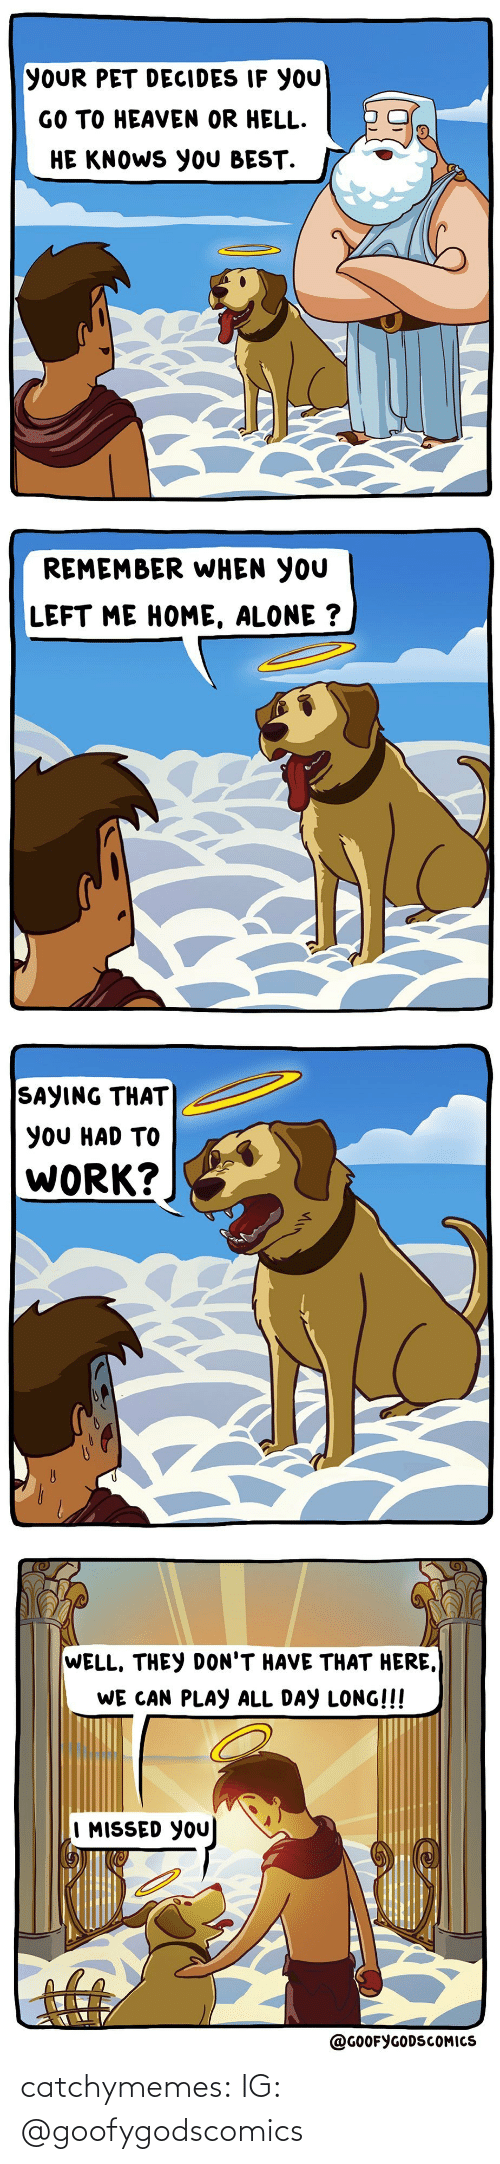 Heaven: YOUR PET DECIDES IF YOU  GO TO HEAVEN OR HELL.  HE KNOWS YOU BEST.   REMEMBER WHEN YOU  LEFT ME HOME, ALONE ?   SAYING THAT  YOU HAD TO  WORK?   WELL, THEY DON'T HAVE THAT HERE,  WE CAN PLAY ALL DAY LONG!!!  I MISSED YOU  @GOOFYGODSCOMICS catchymemes:  IG: @goofygodscomics